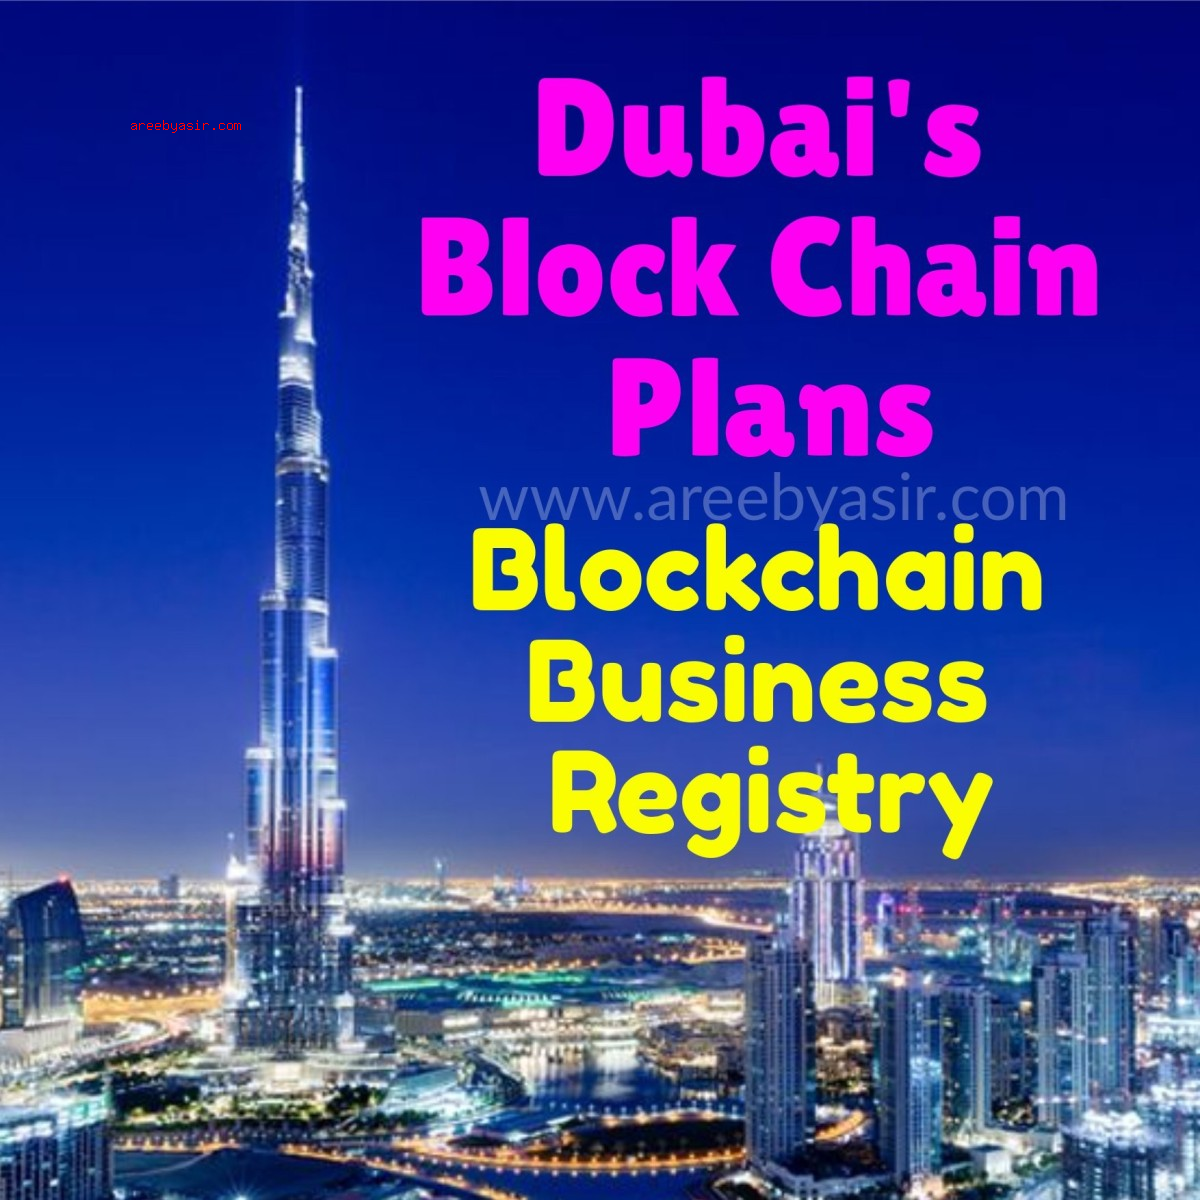 Dubai-Creates-Business-Blockchain-Registry